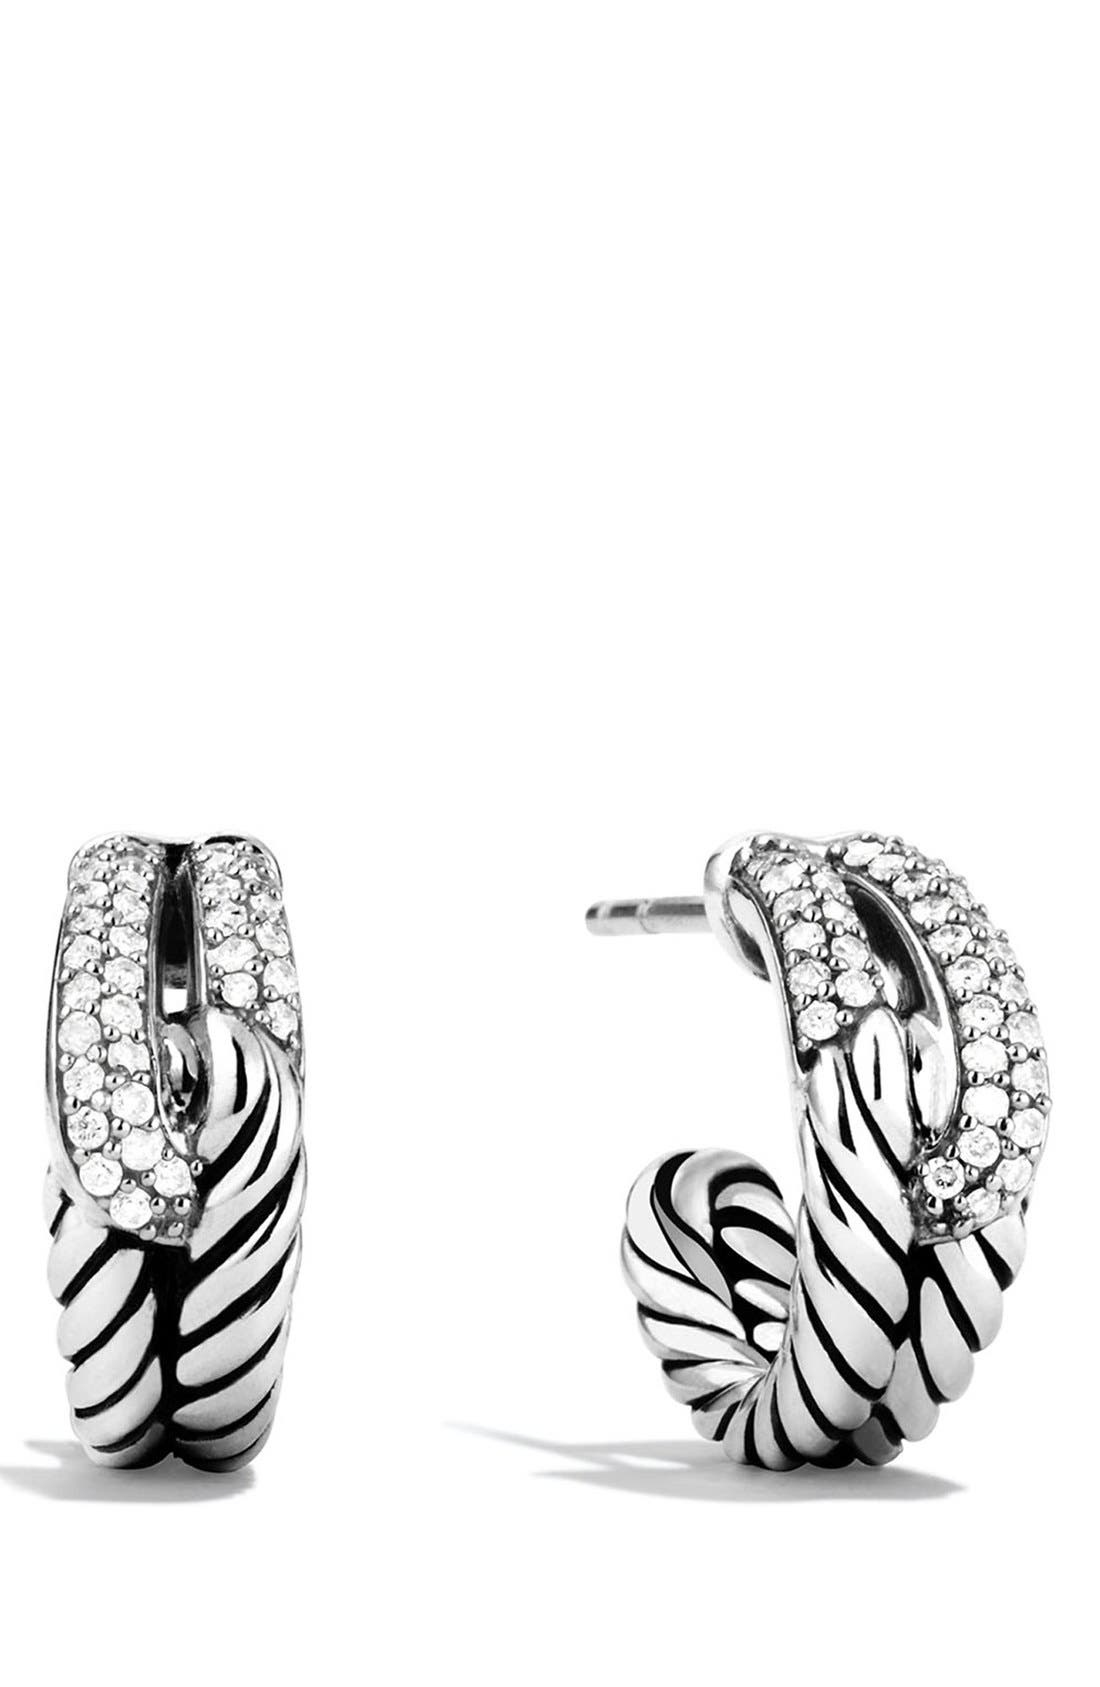 DAVID YURMAN Labyrinth Single Loop Earrings with Diamonds